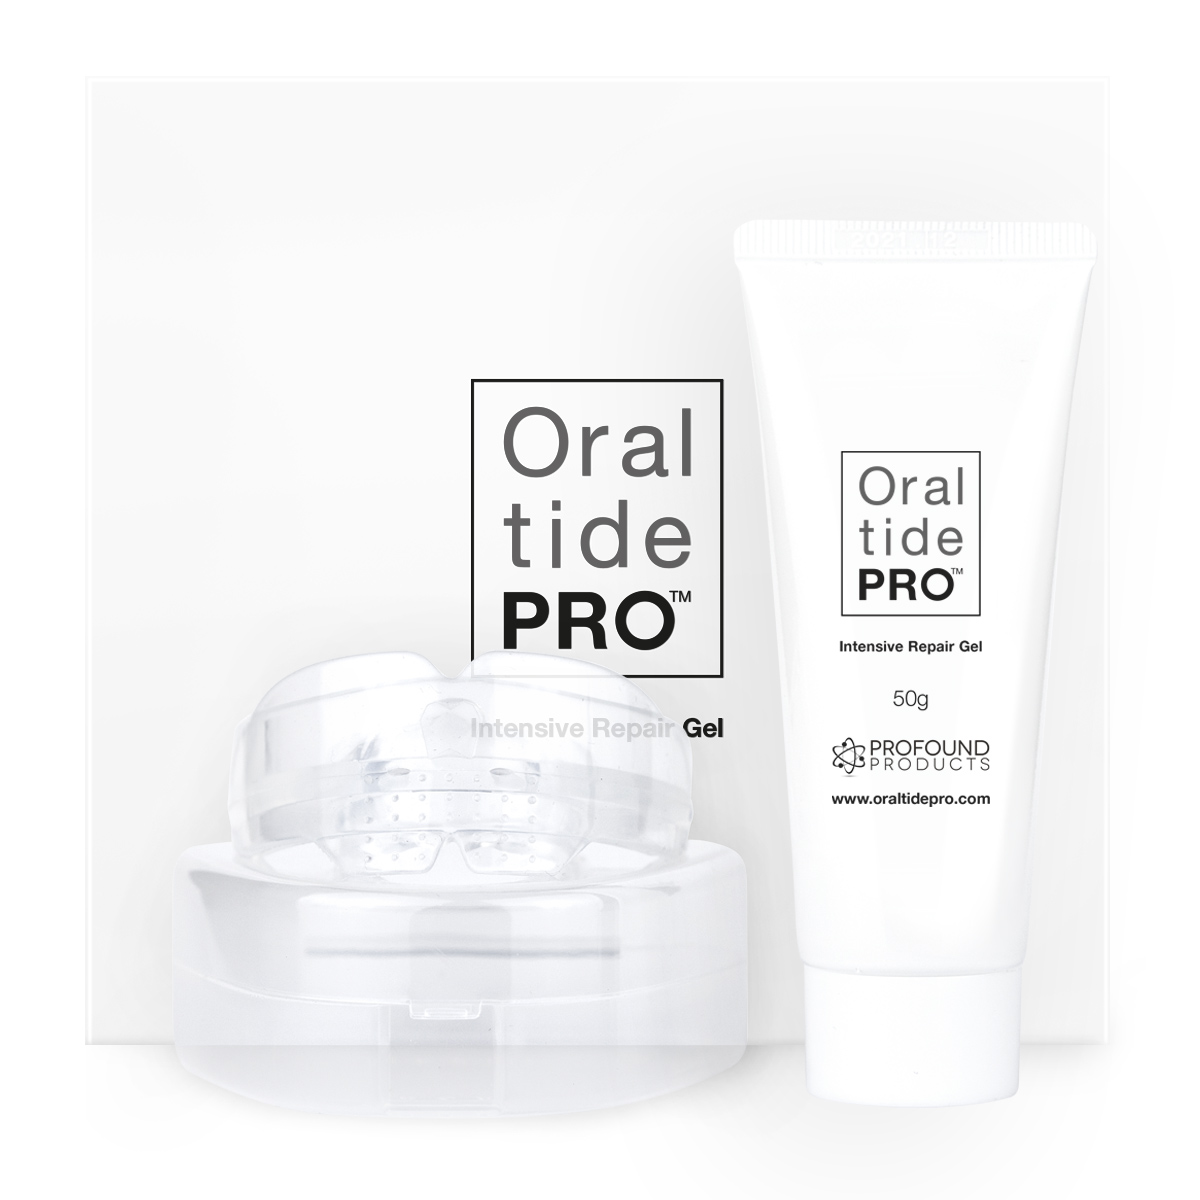 Oraltide-Pro™ Intensive Repair Gel Products